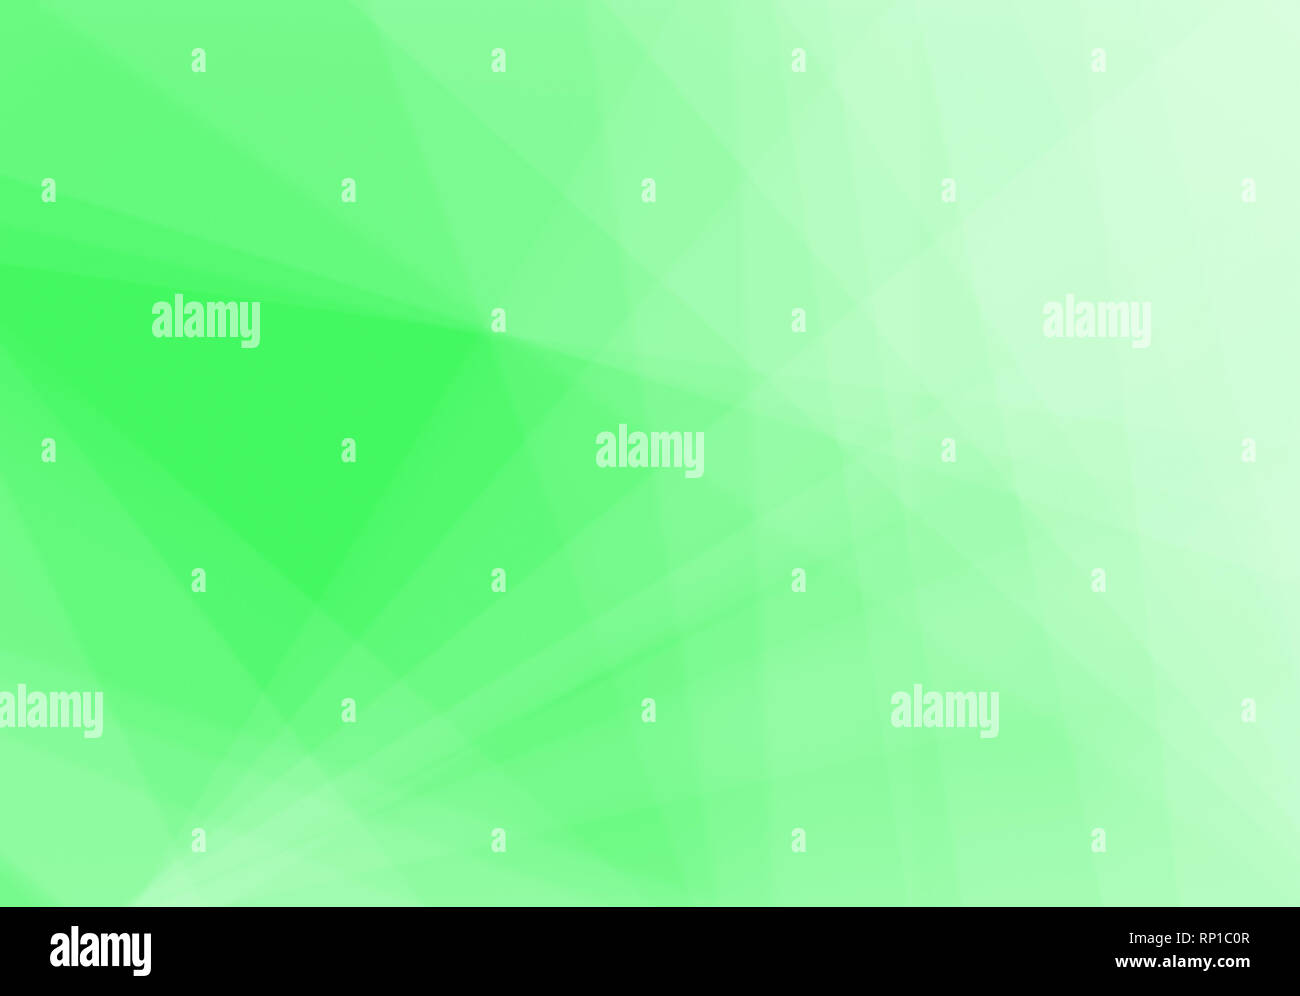 Abstract neon green background with light and transparent lines, triangle shapes and diagonal stripes in random pattern. Copy space. Stock Photo